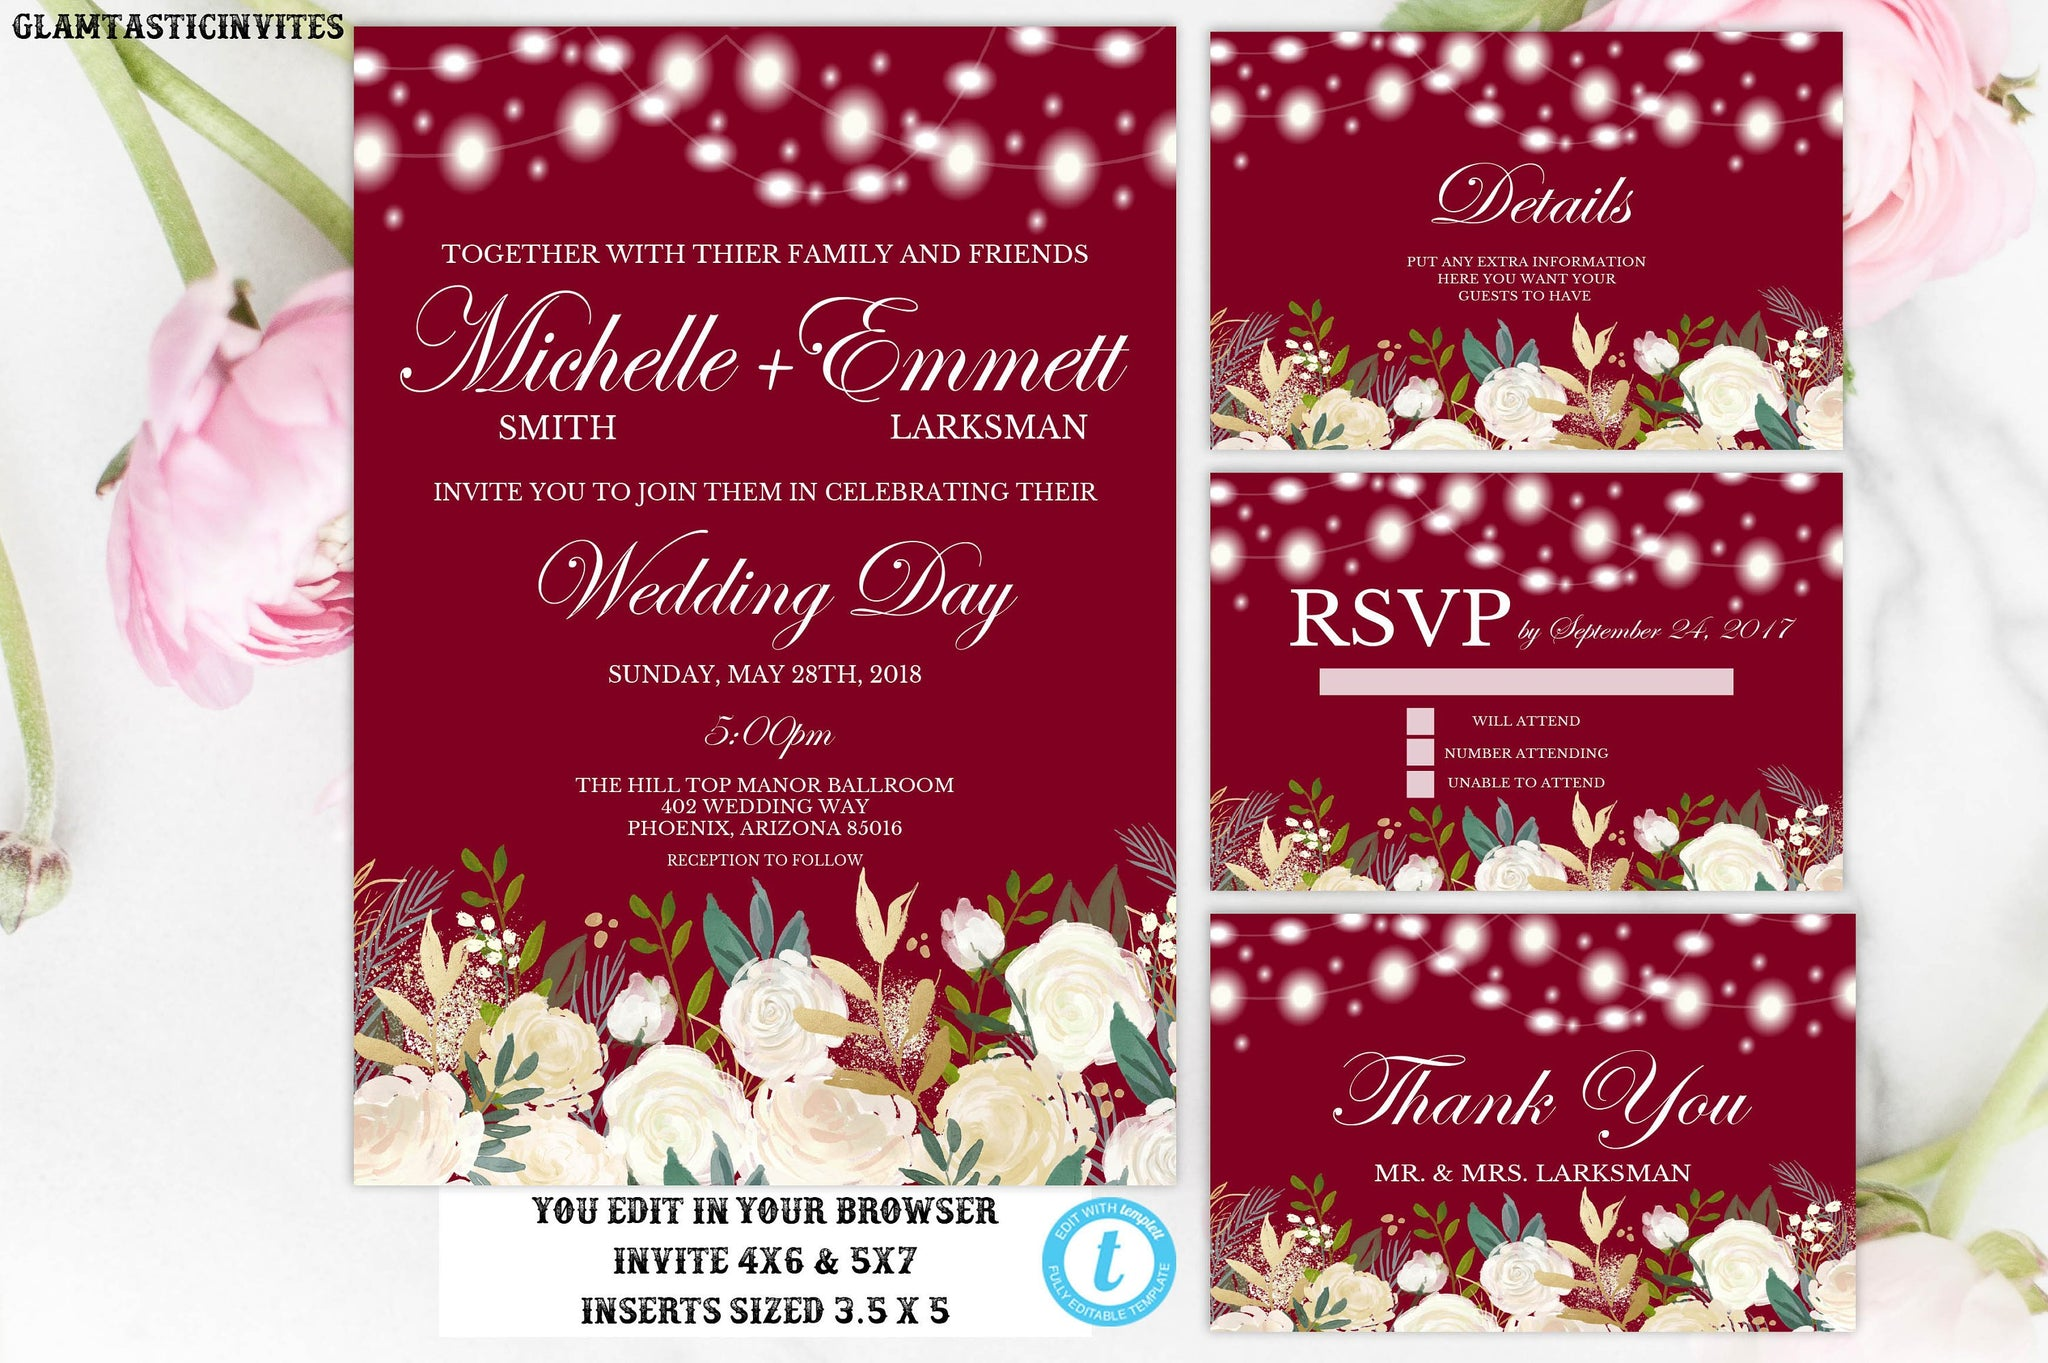 Burgundy White Rose Floral Wedding Invitation Printable Template, Instant Download, Editable, Burgundy, Rose, Wedding Invitation, Template